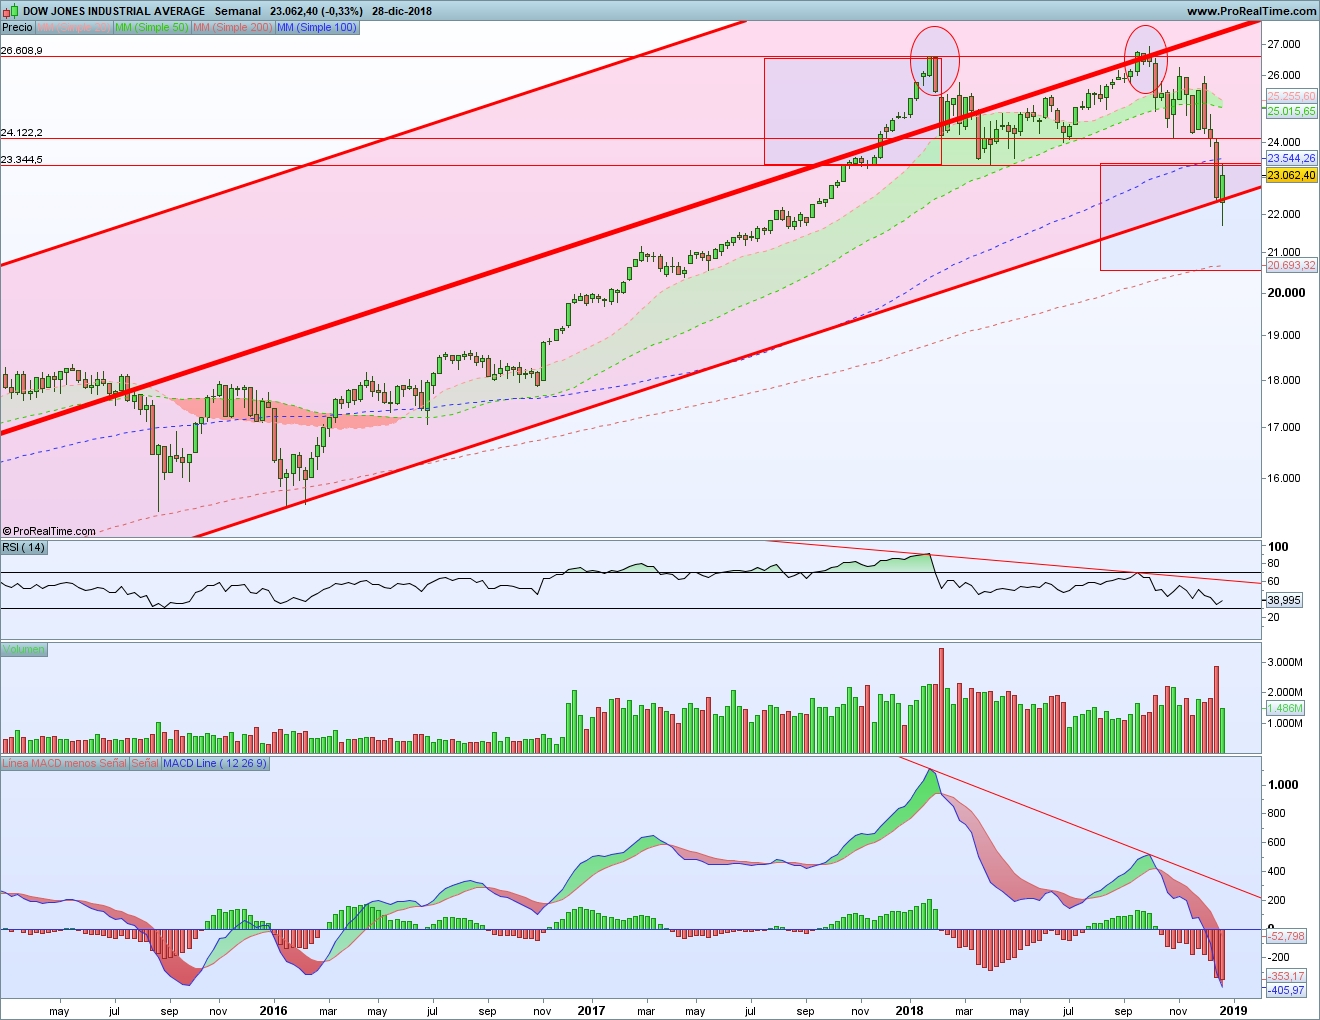 Doble techo Dow Jones